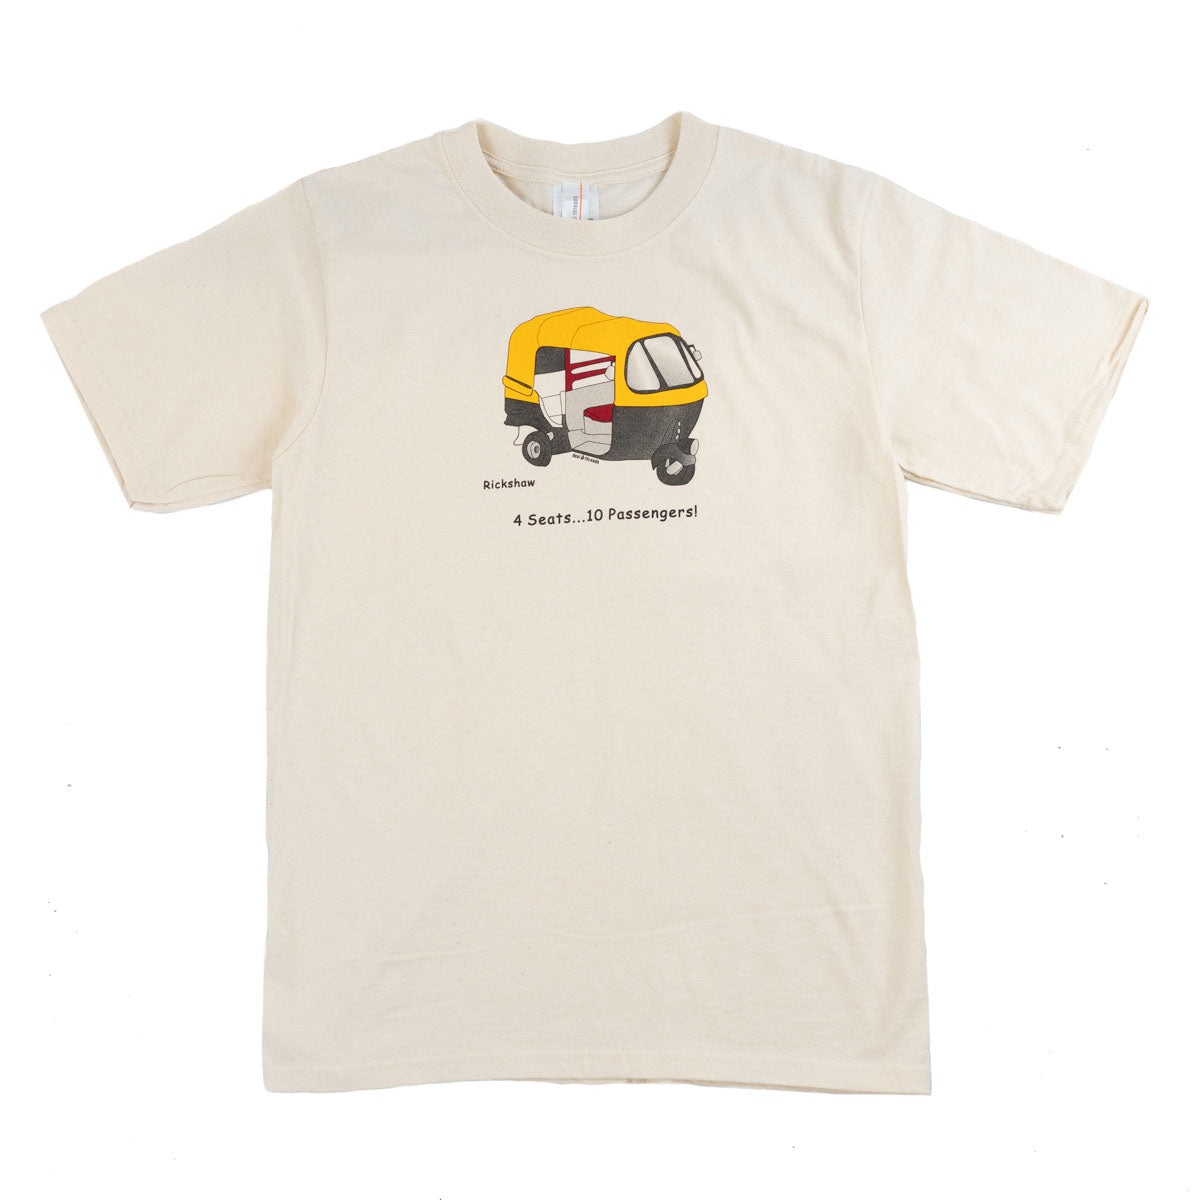 Rickshaw Youth T-shirt